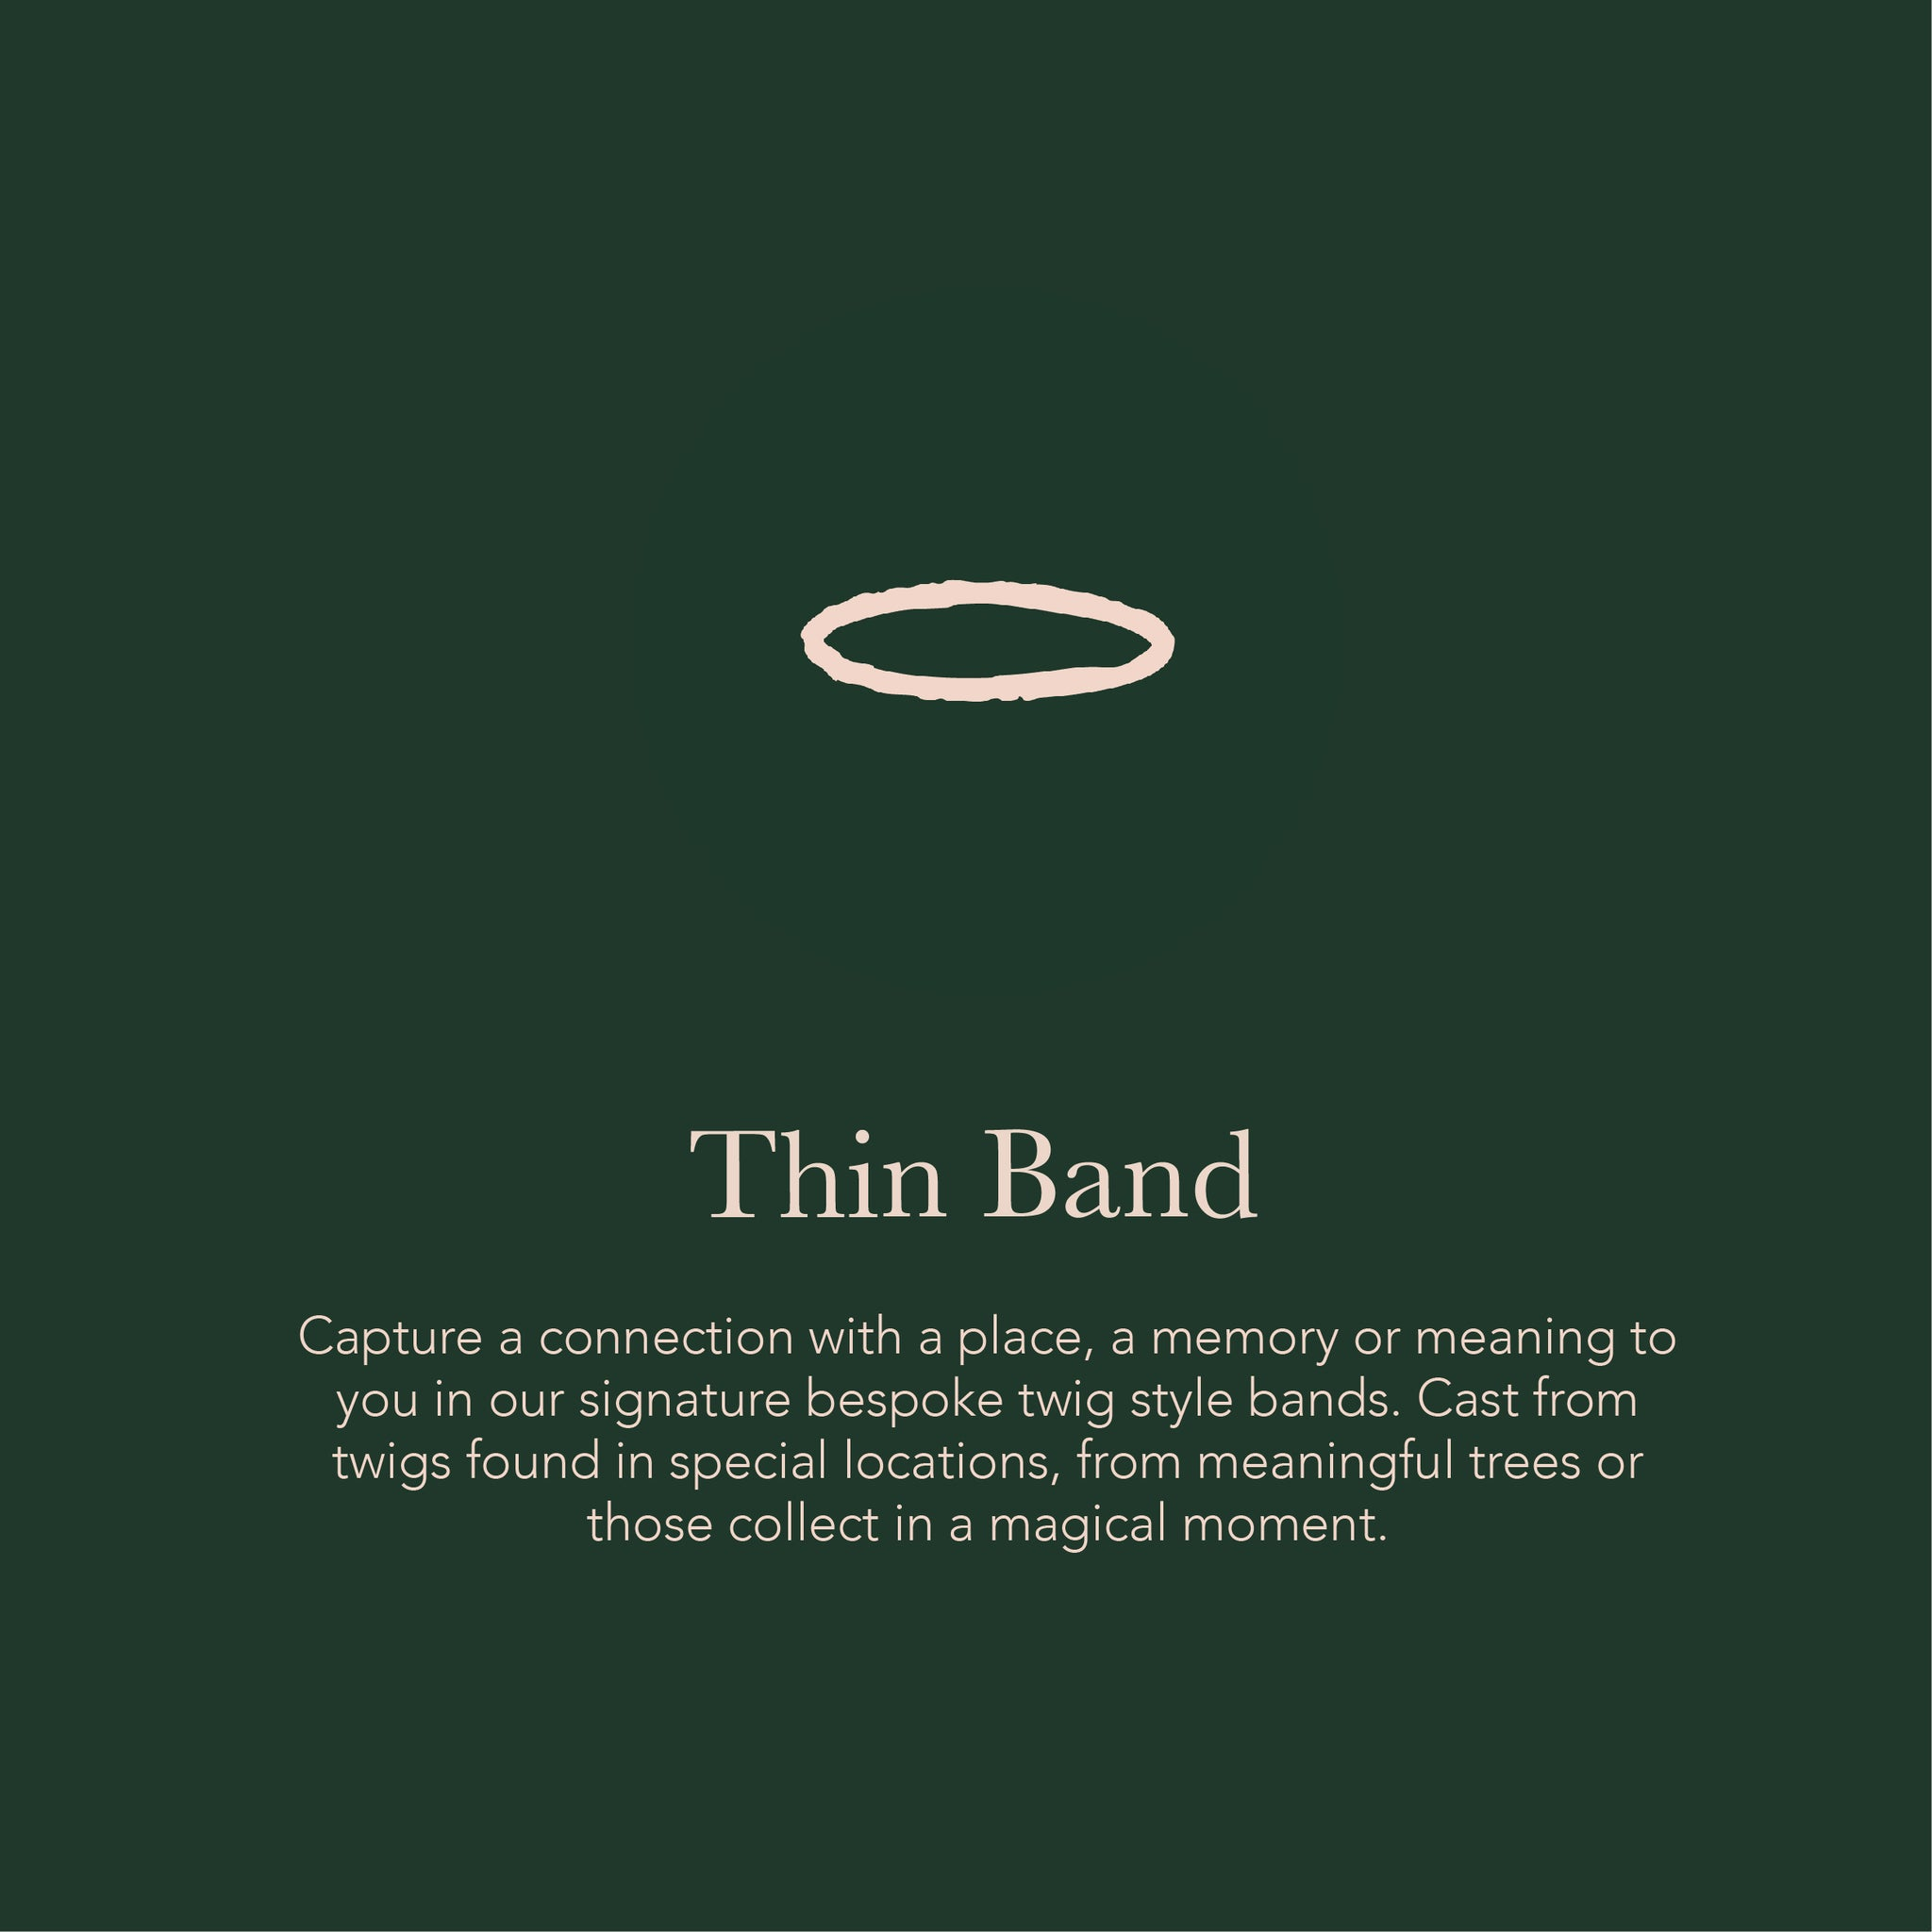 Thin Band - Small - Create